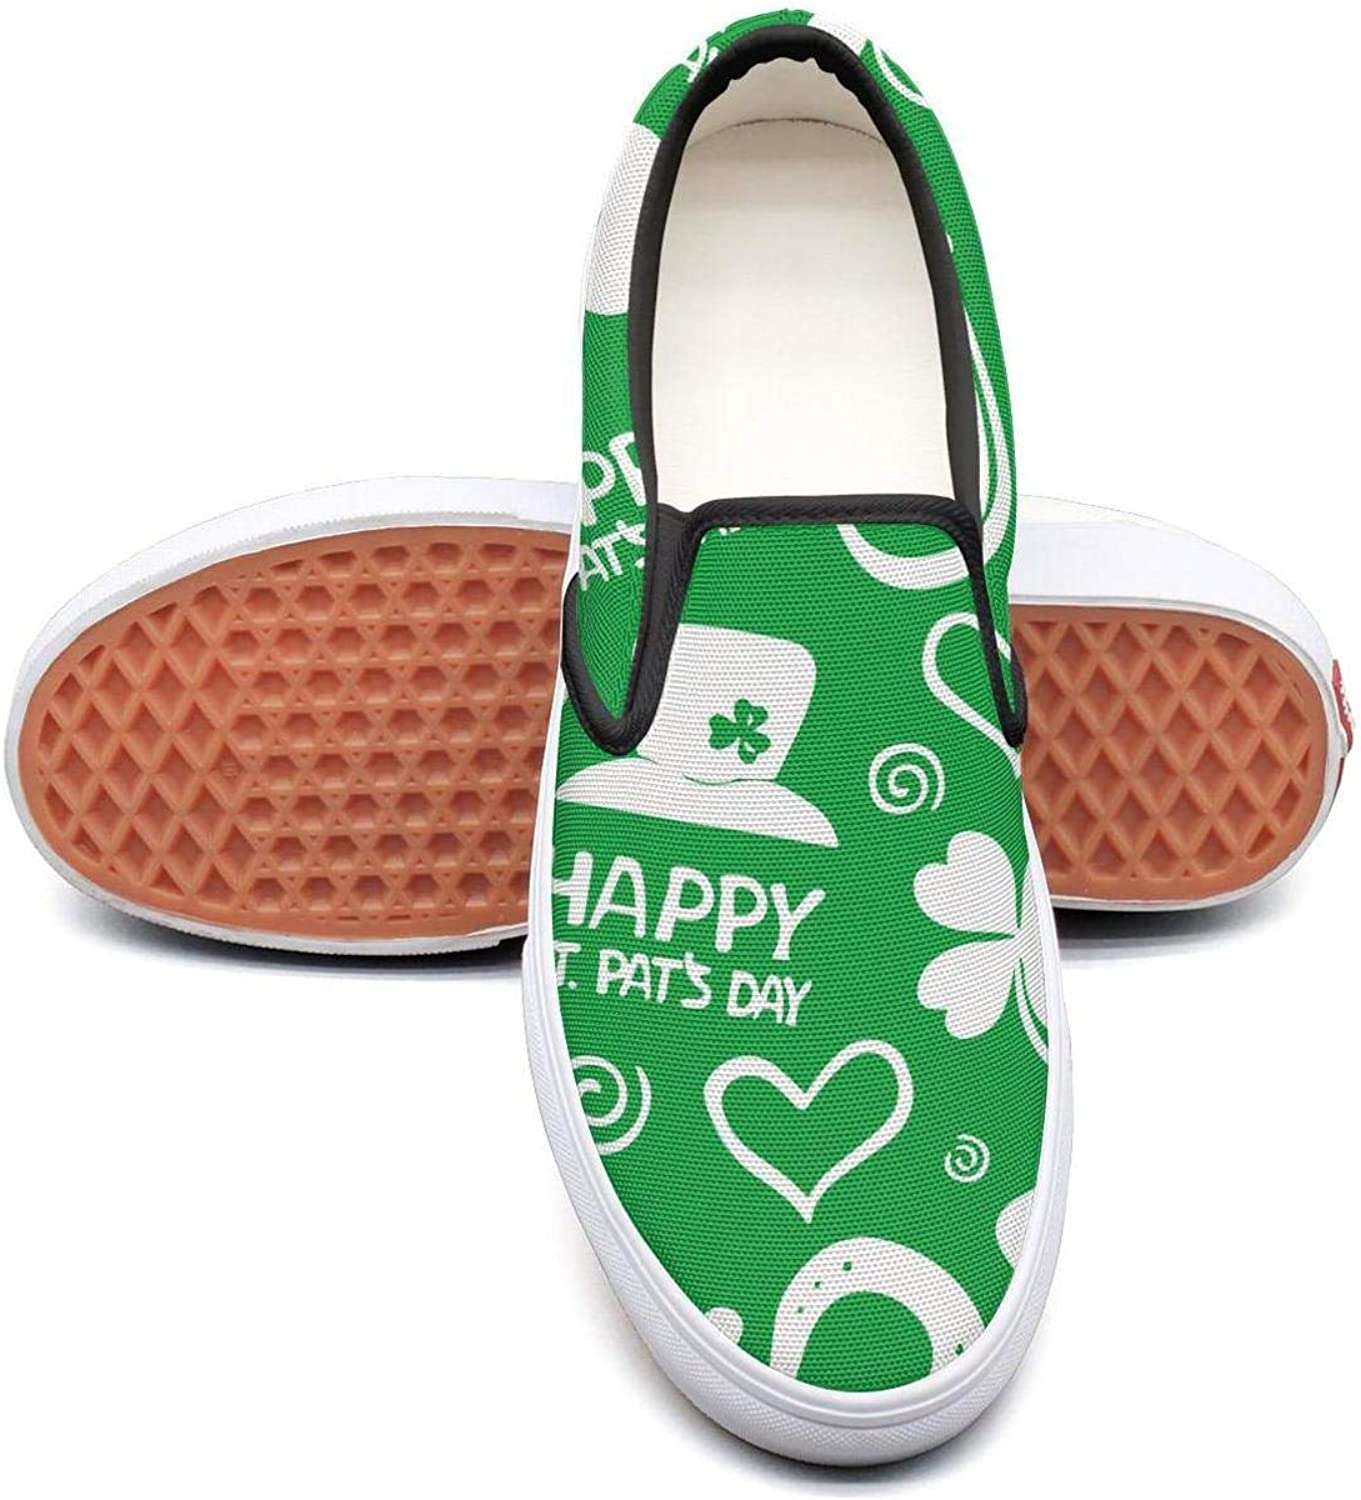 Happy St. Patrick's Day Mens Fashion Slip on Canvas Lace up Dhoes Low Top Volleyball Sneakers